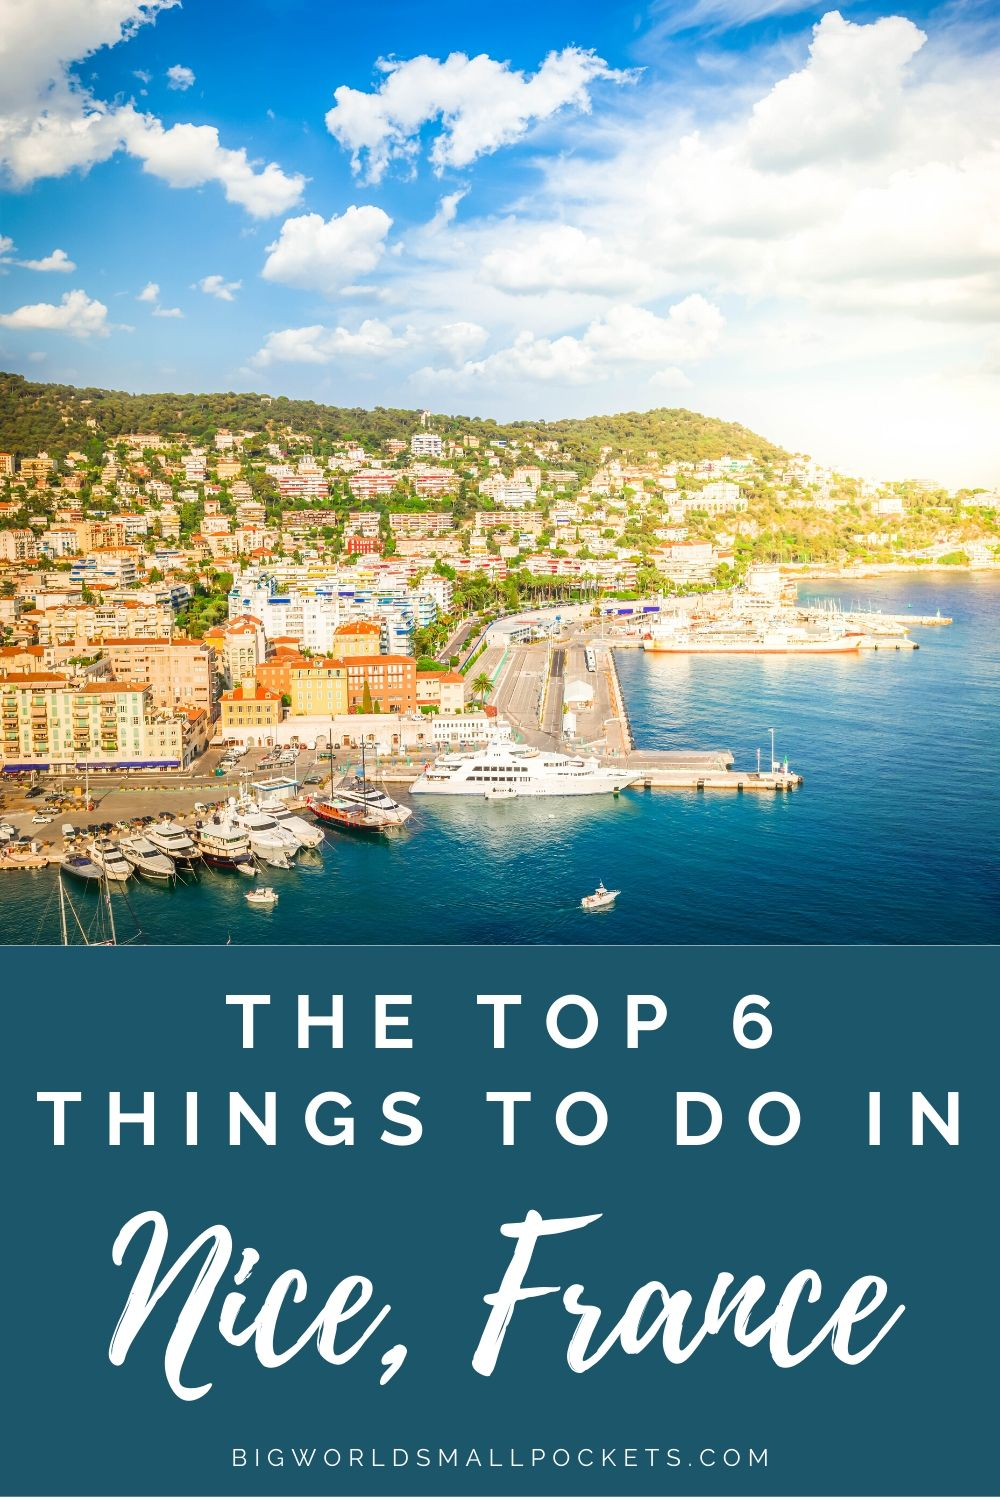 The Top 6 Things to Do in Nice, France